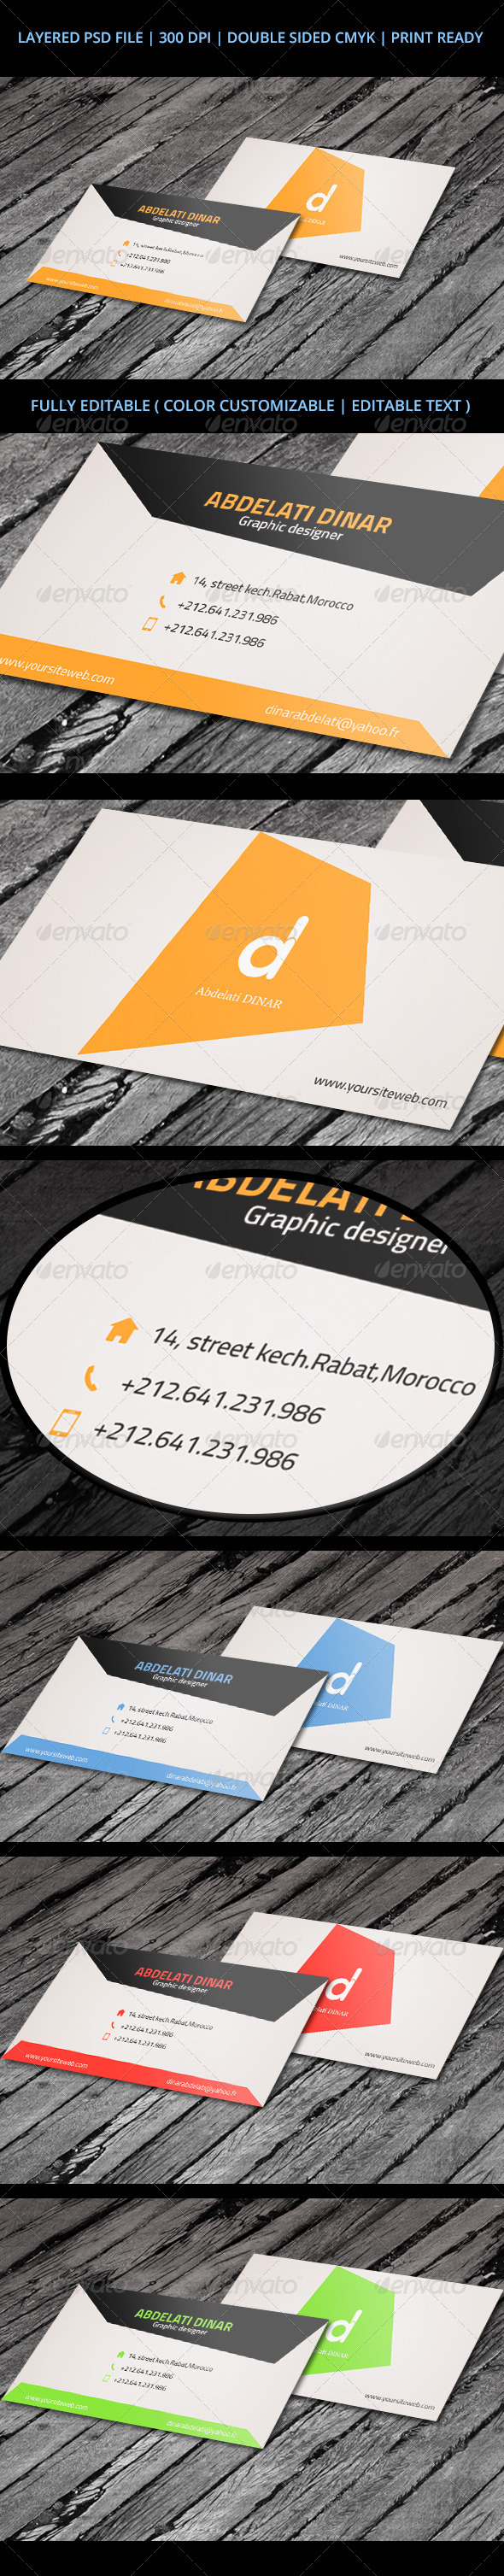 Business Card 04 - Creative Business Cards